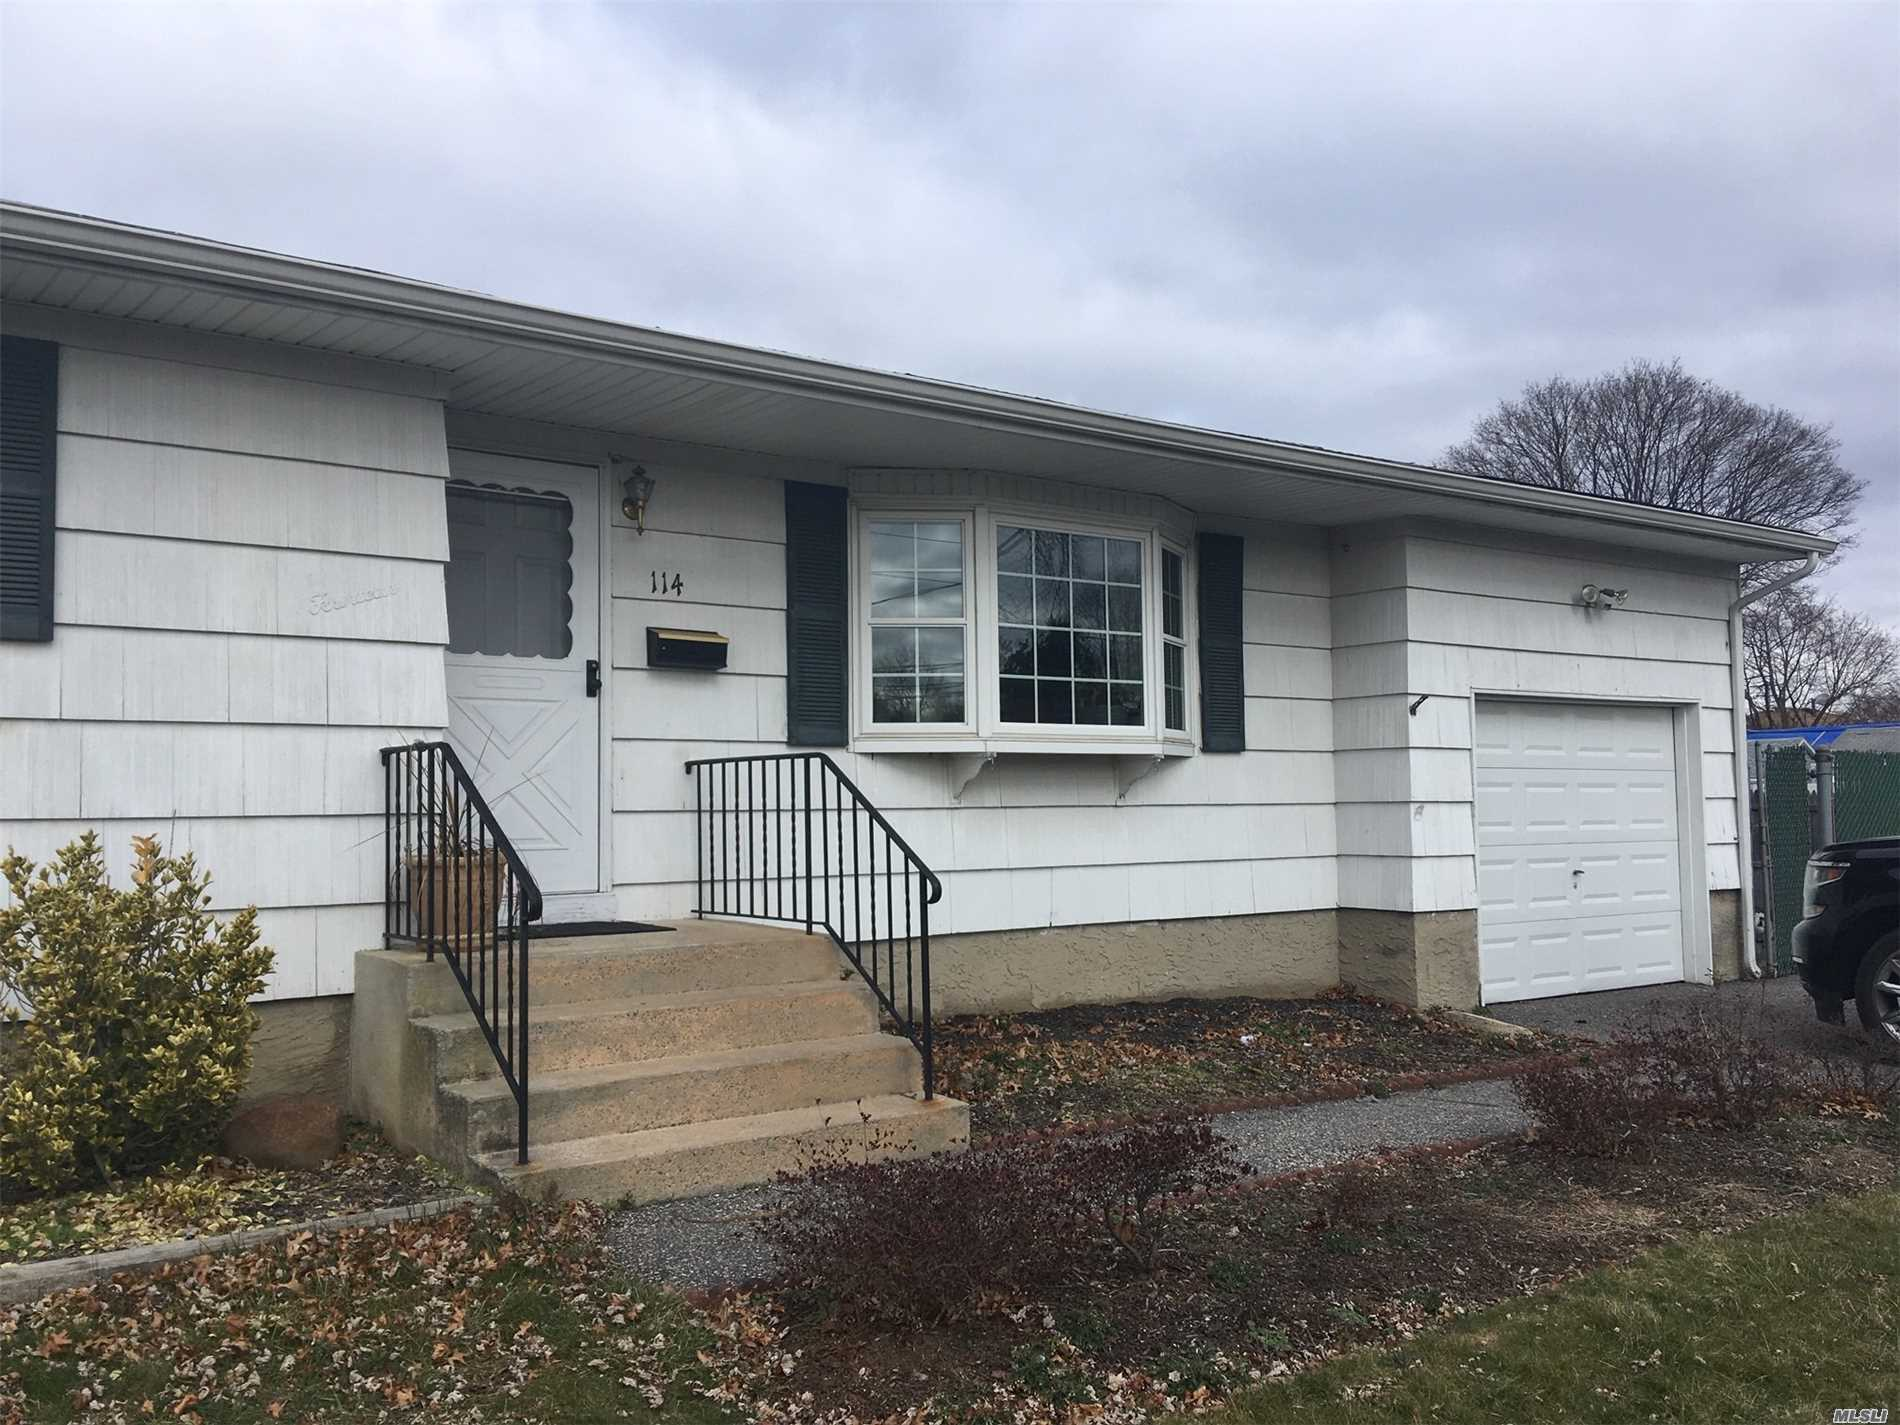 Beautiful Wide Ranch Large Rooms, Country Sized Kitchen 2 Baths, Washer/Dryer, Spacious Fenced Yard Sundeck, Small Pet Considered, Finished Basement Spacious Living. Attached Garage 4 Car Off Street Parking. A Must See. 2/15/2019 Occupancy